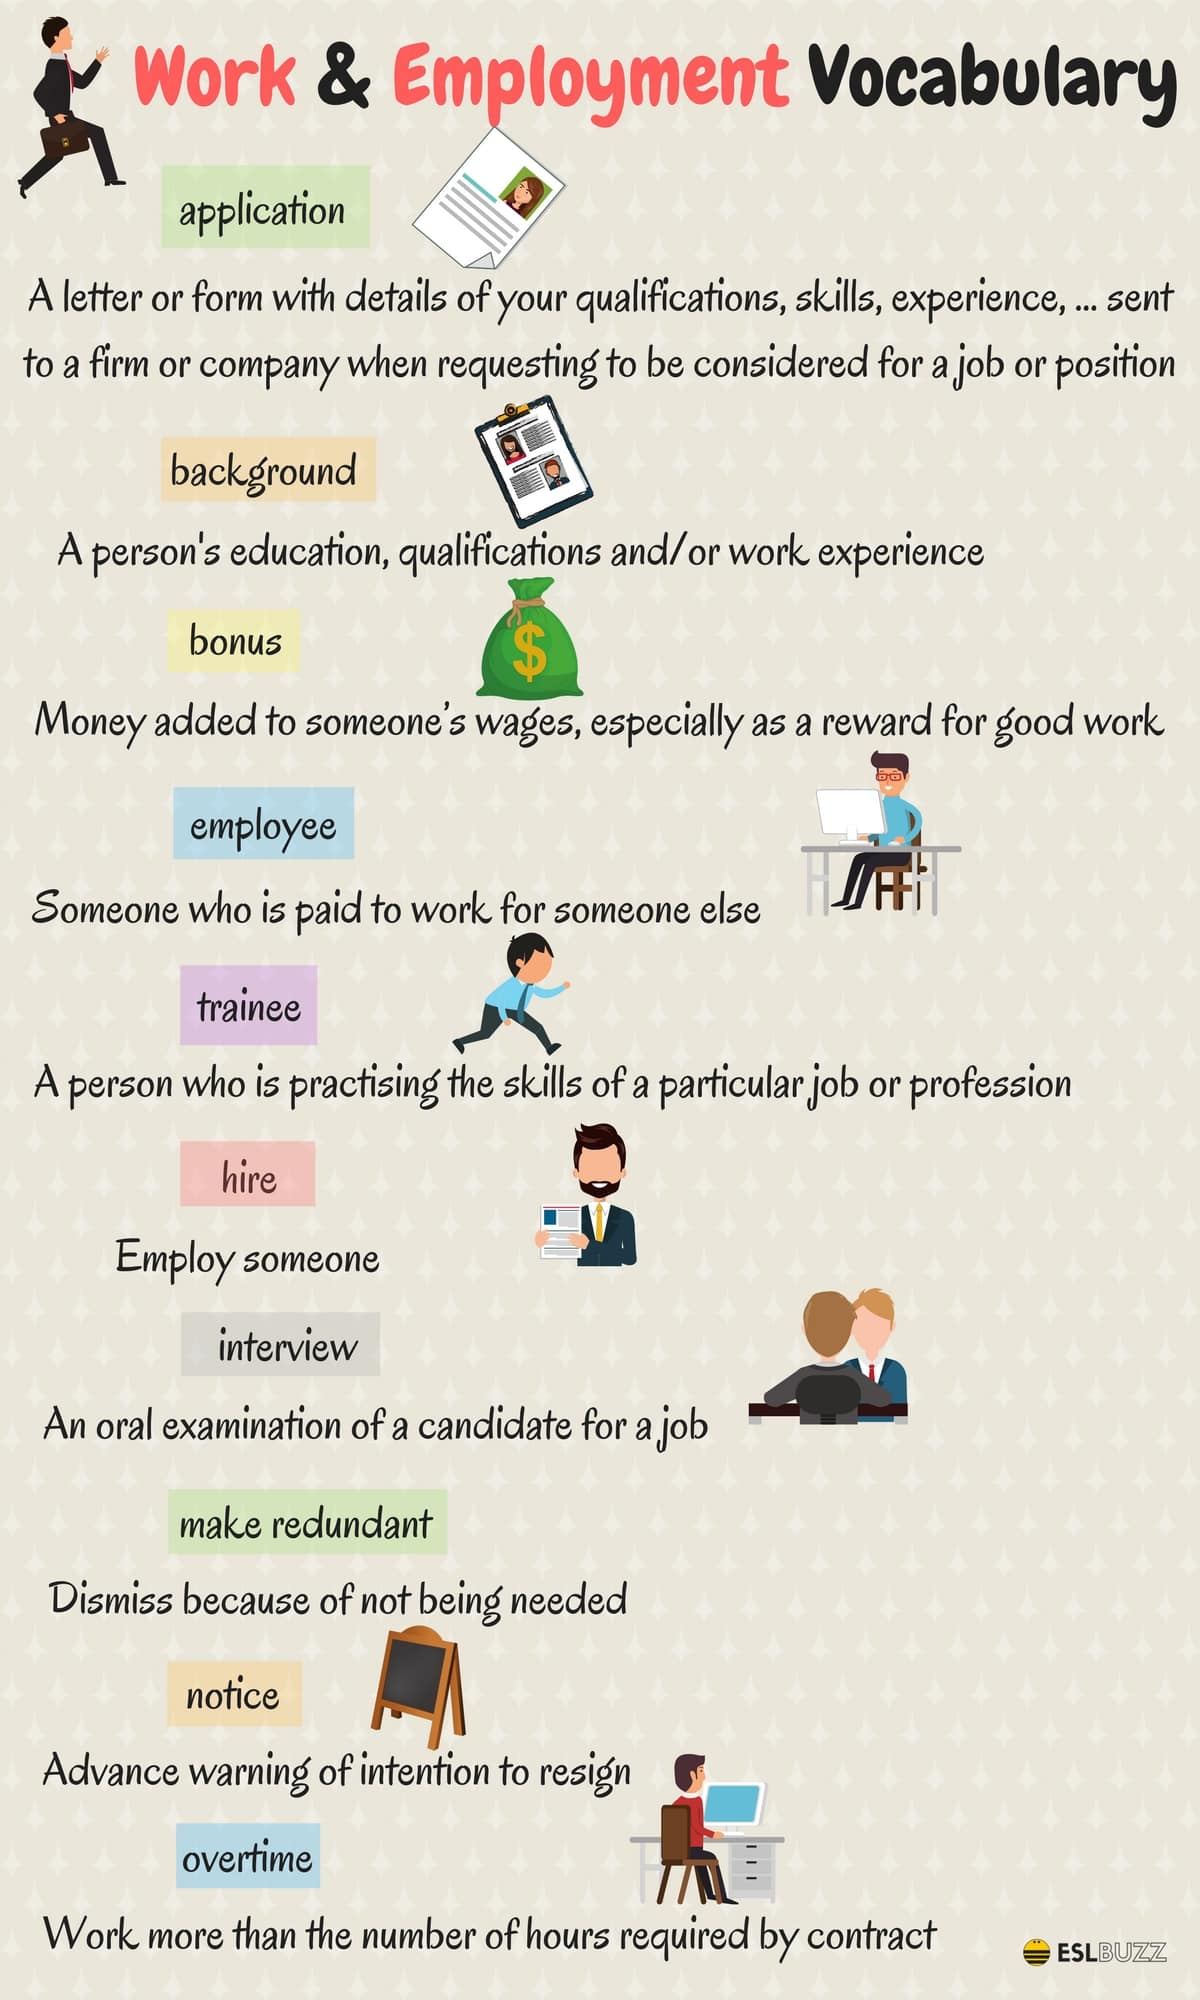 Expressionsabout Work and Employment